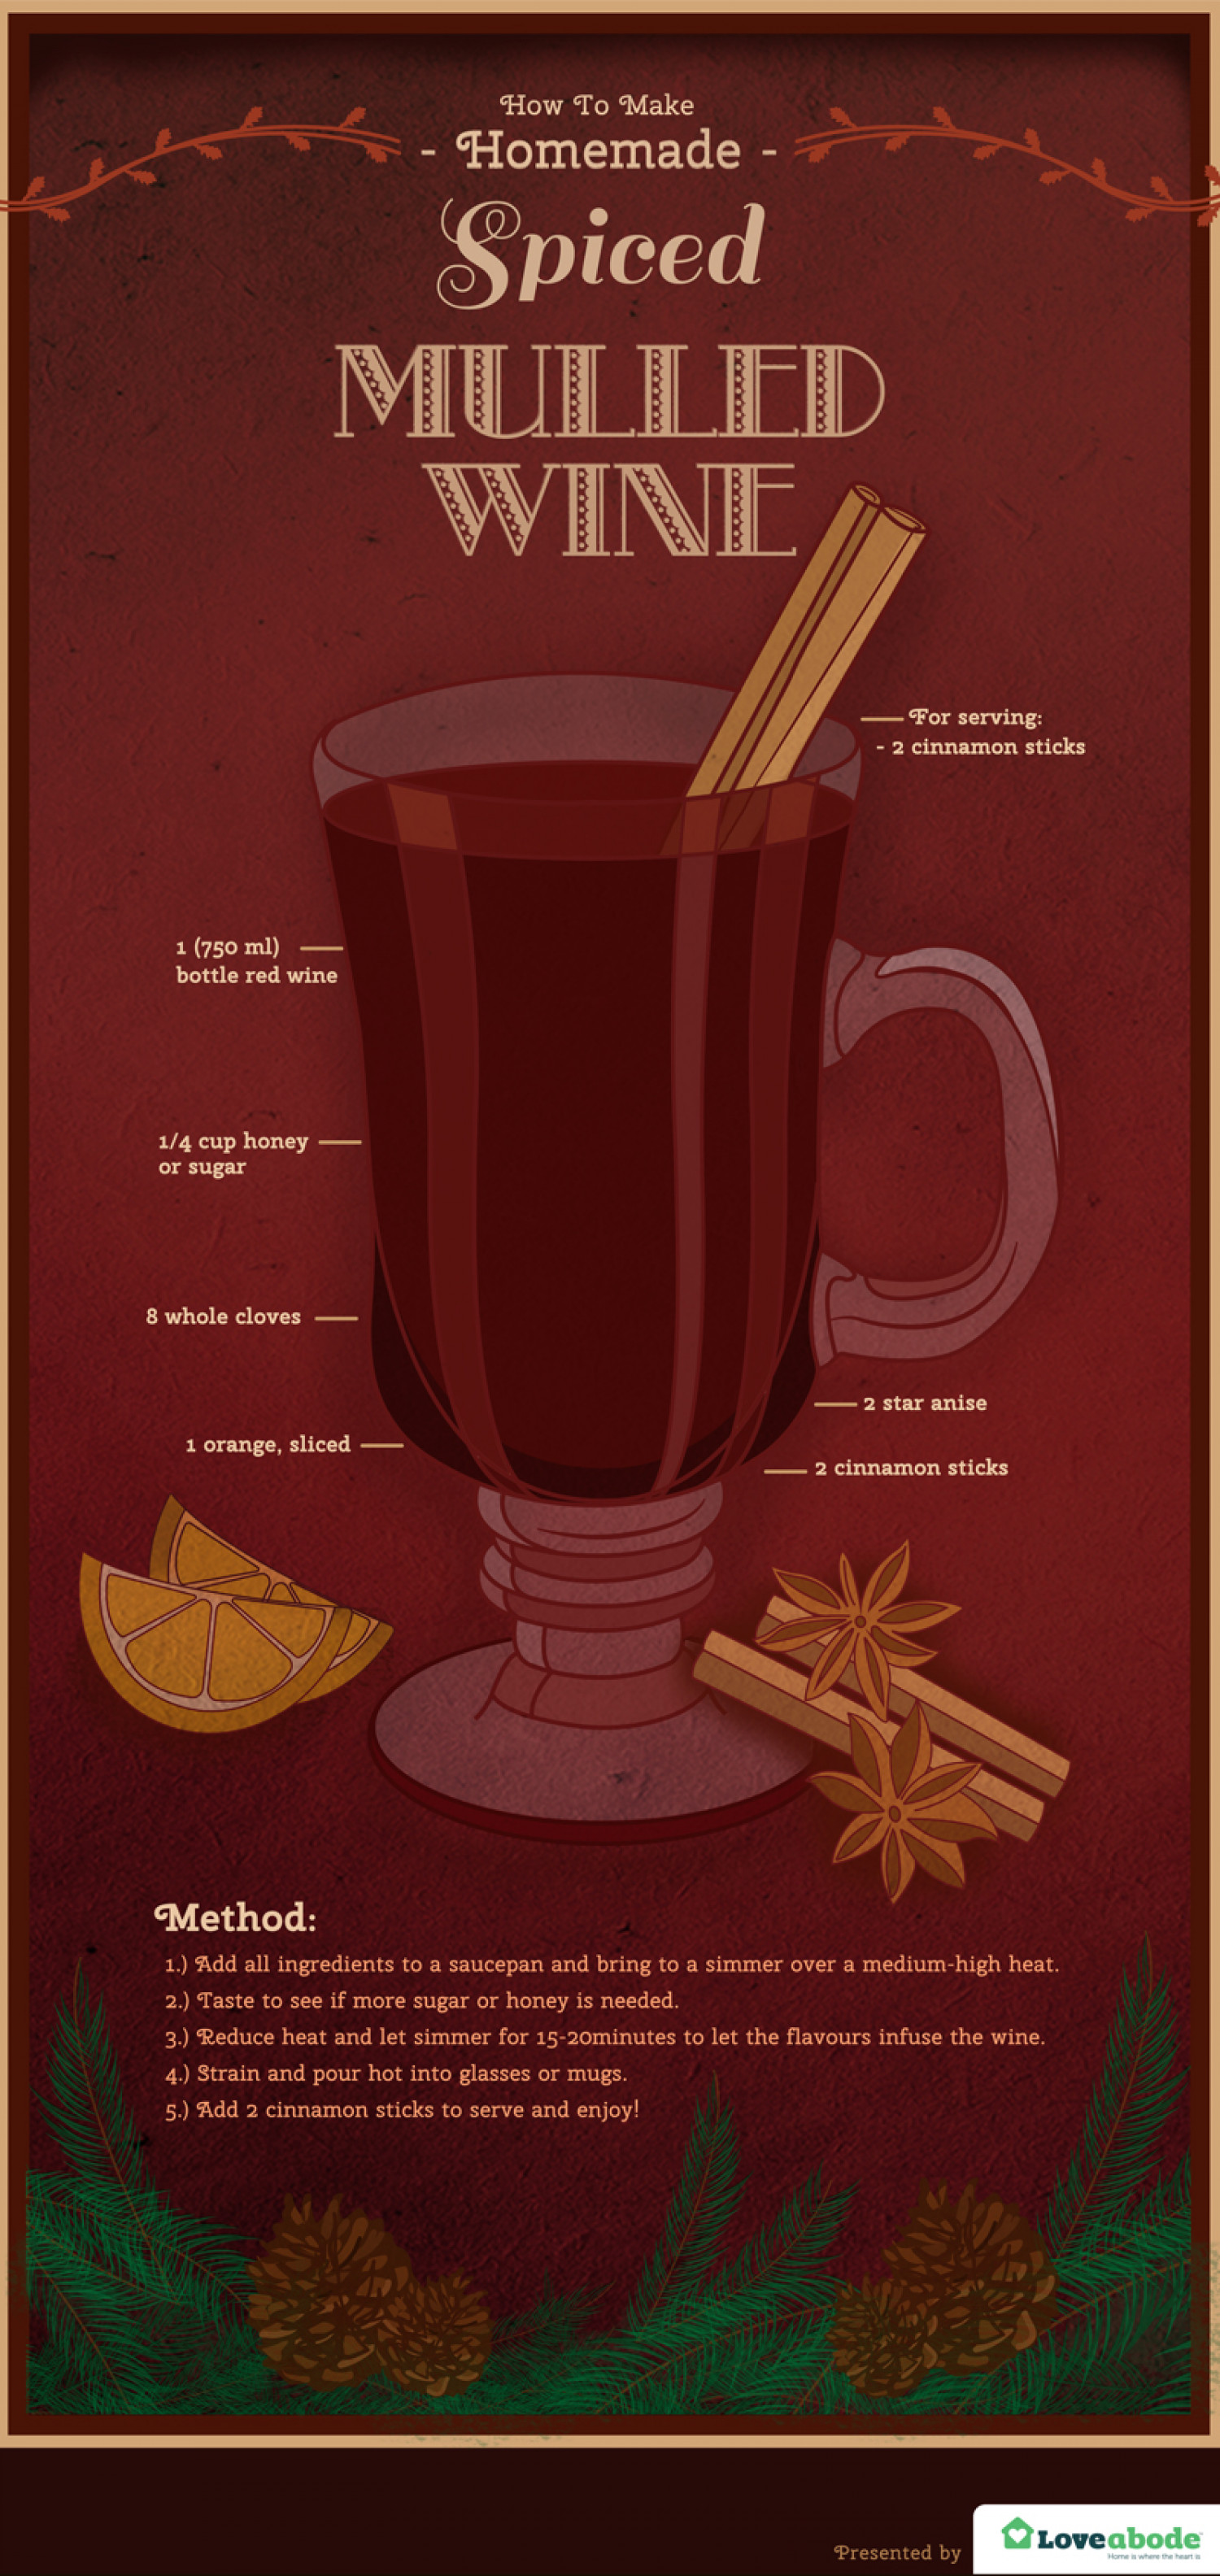 How to Make Homemade Spiced Mulled Wine  Infographic